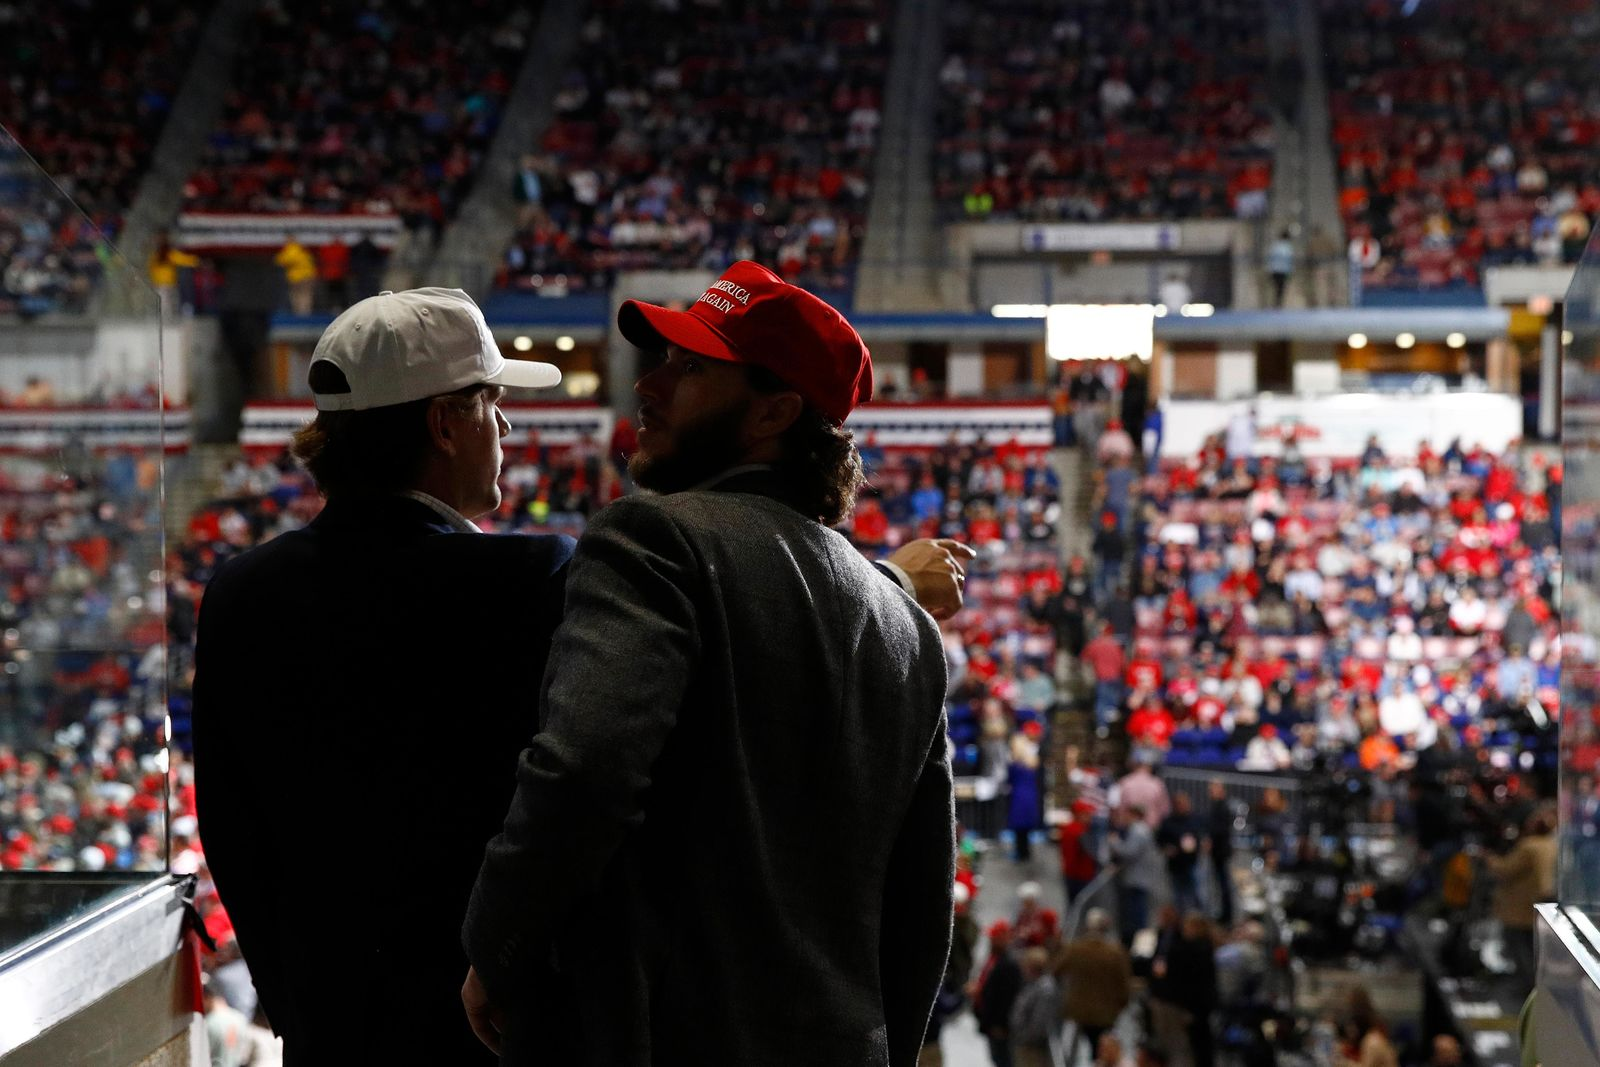 Attendees look for seats before a campaign rally for President Donald Trump, Friday, Feb. 28, 2020, in North Charleston, S.C. (AP Photo/Patrick Semansky)